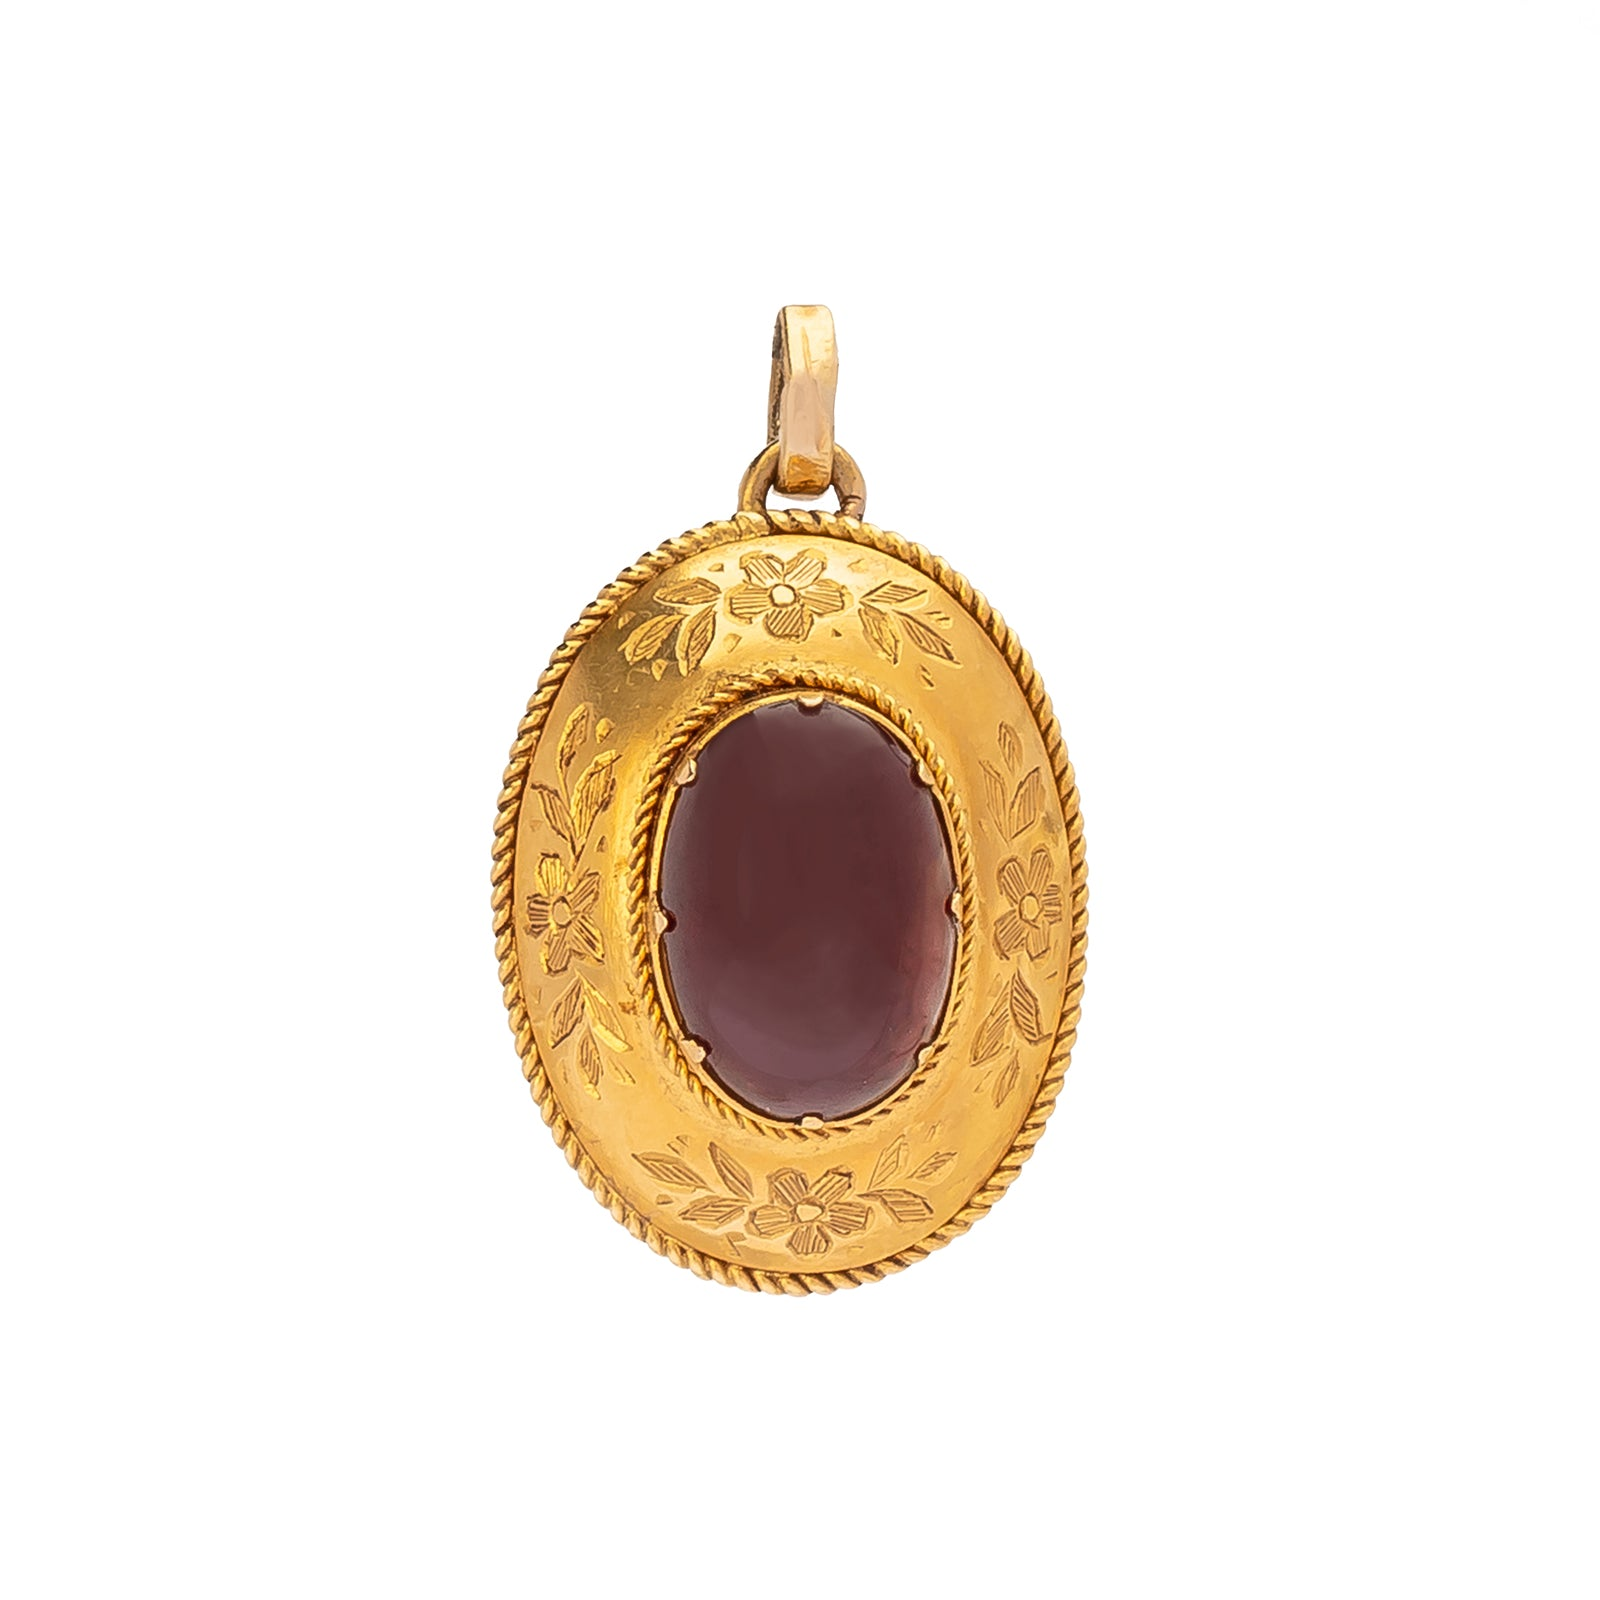 Antique & Vintage Jewelry Oval Garnet Pendant - Charms & Pendants - Broken English Jewelry